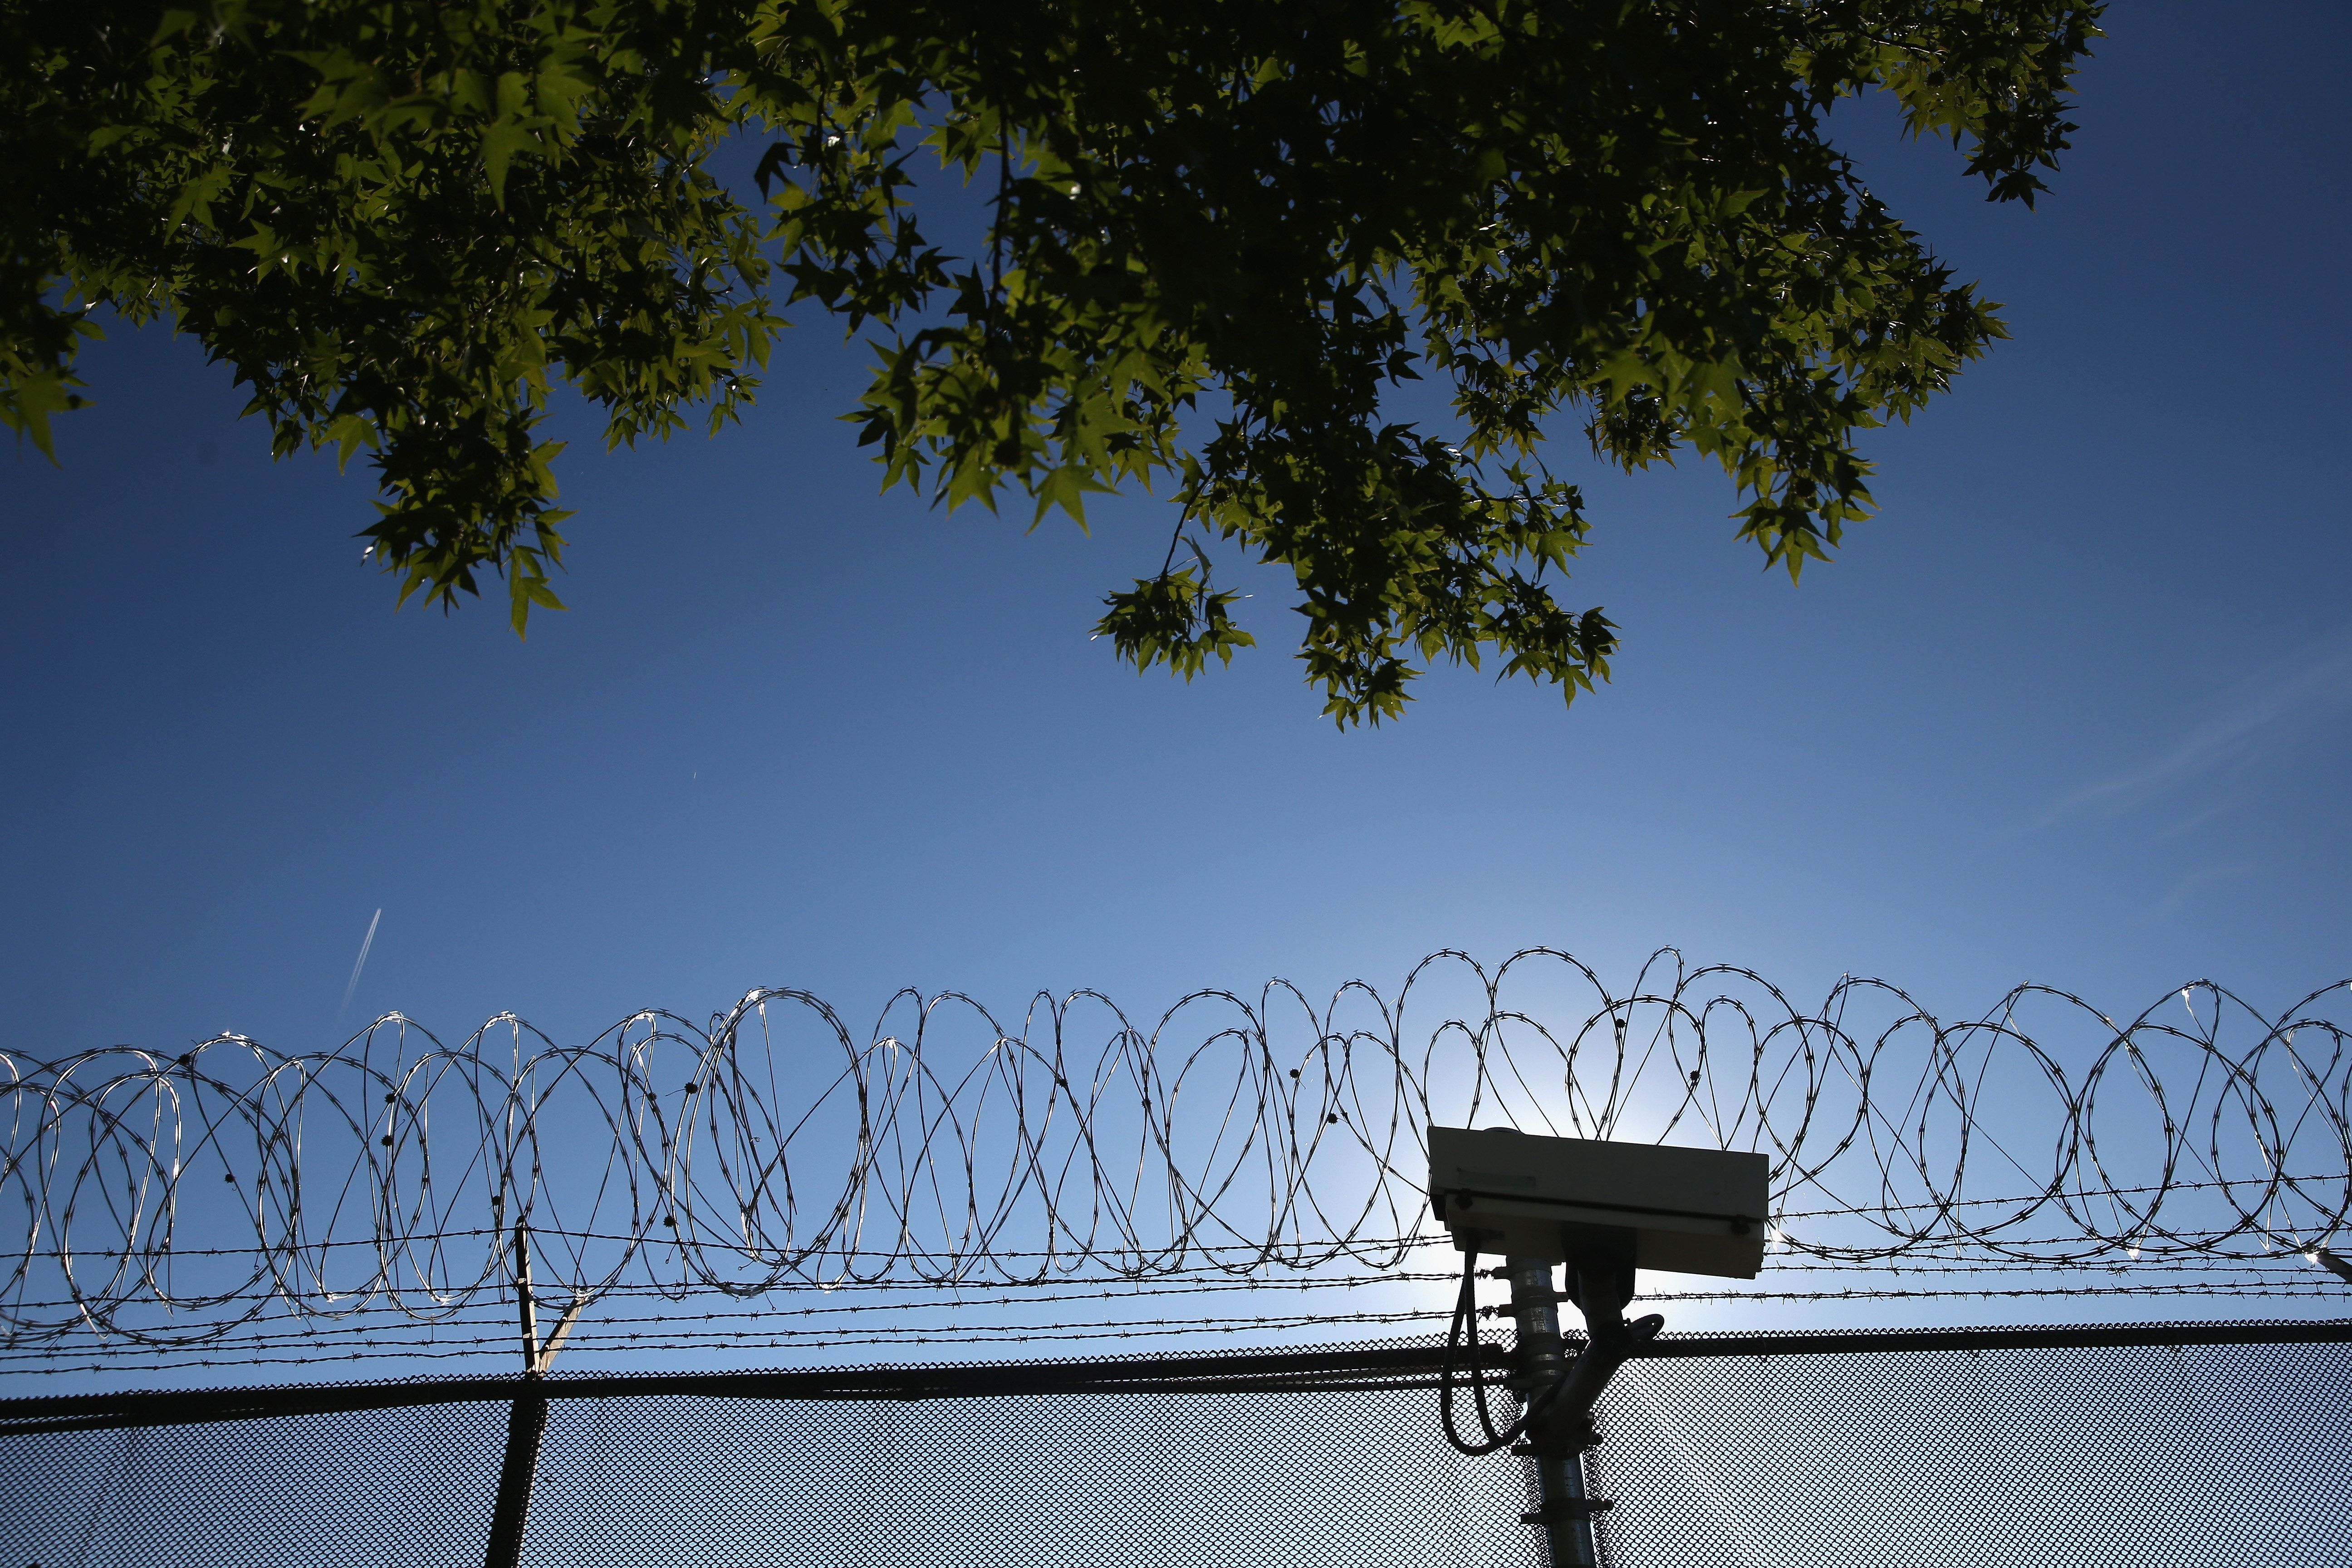 YORK, PA - SEPTEMBER 15:  Concertina wire and a security camera line the perimiter of the York County Dentention Center as immigration reform activists protest on September 15, 2015 in York, Pennsylvania. One hundred women kicked off a week-long 100-mile protest march from the detention center to Washington D.C. ahead of the visit of Pope Francis. The march is part of the We Belong Together campaign to stop immigrant detentions nationwide.  (Photo by John Moore/Getty Images)